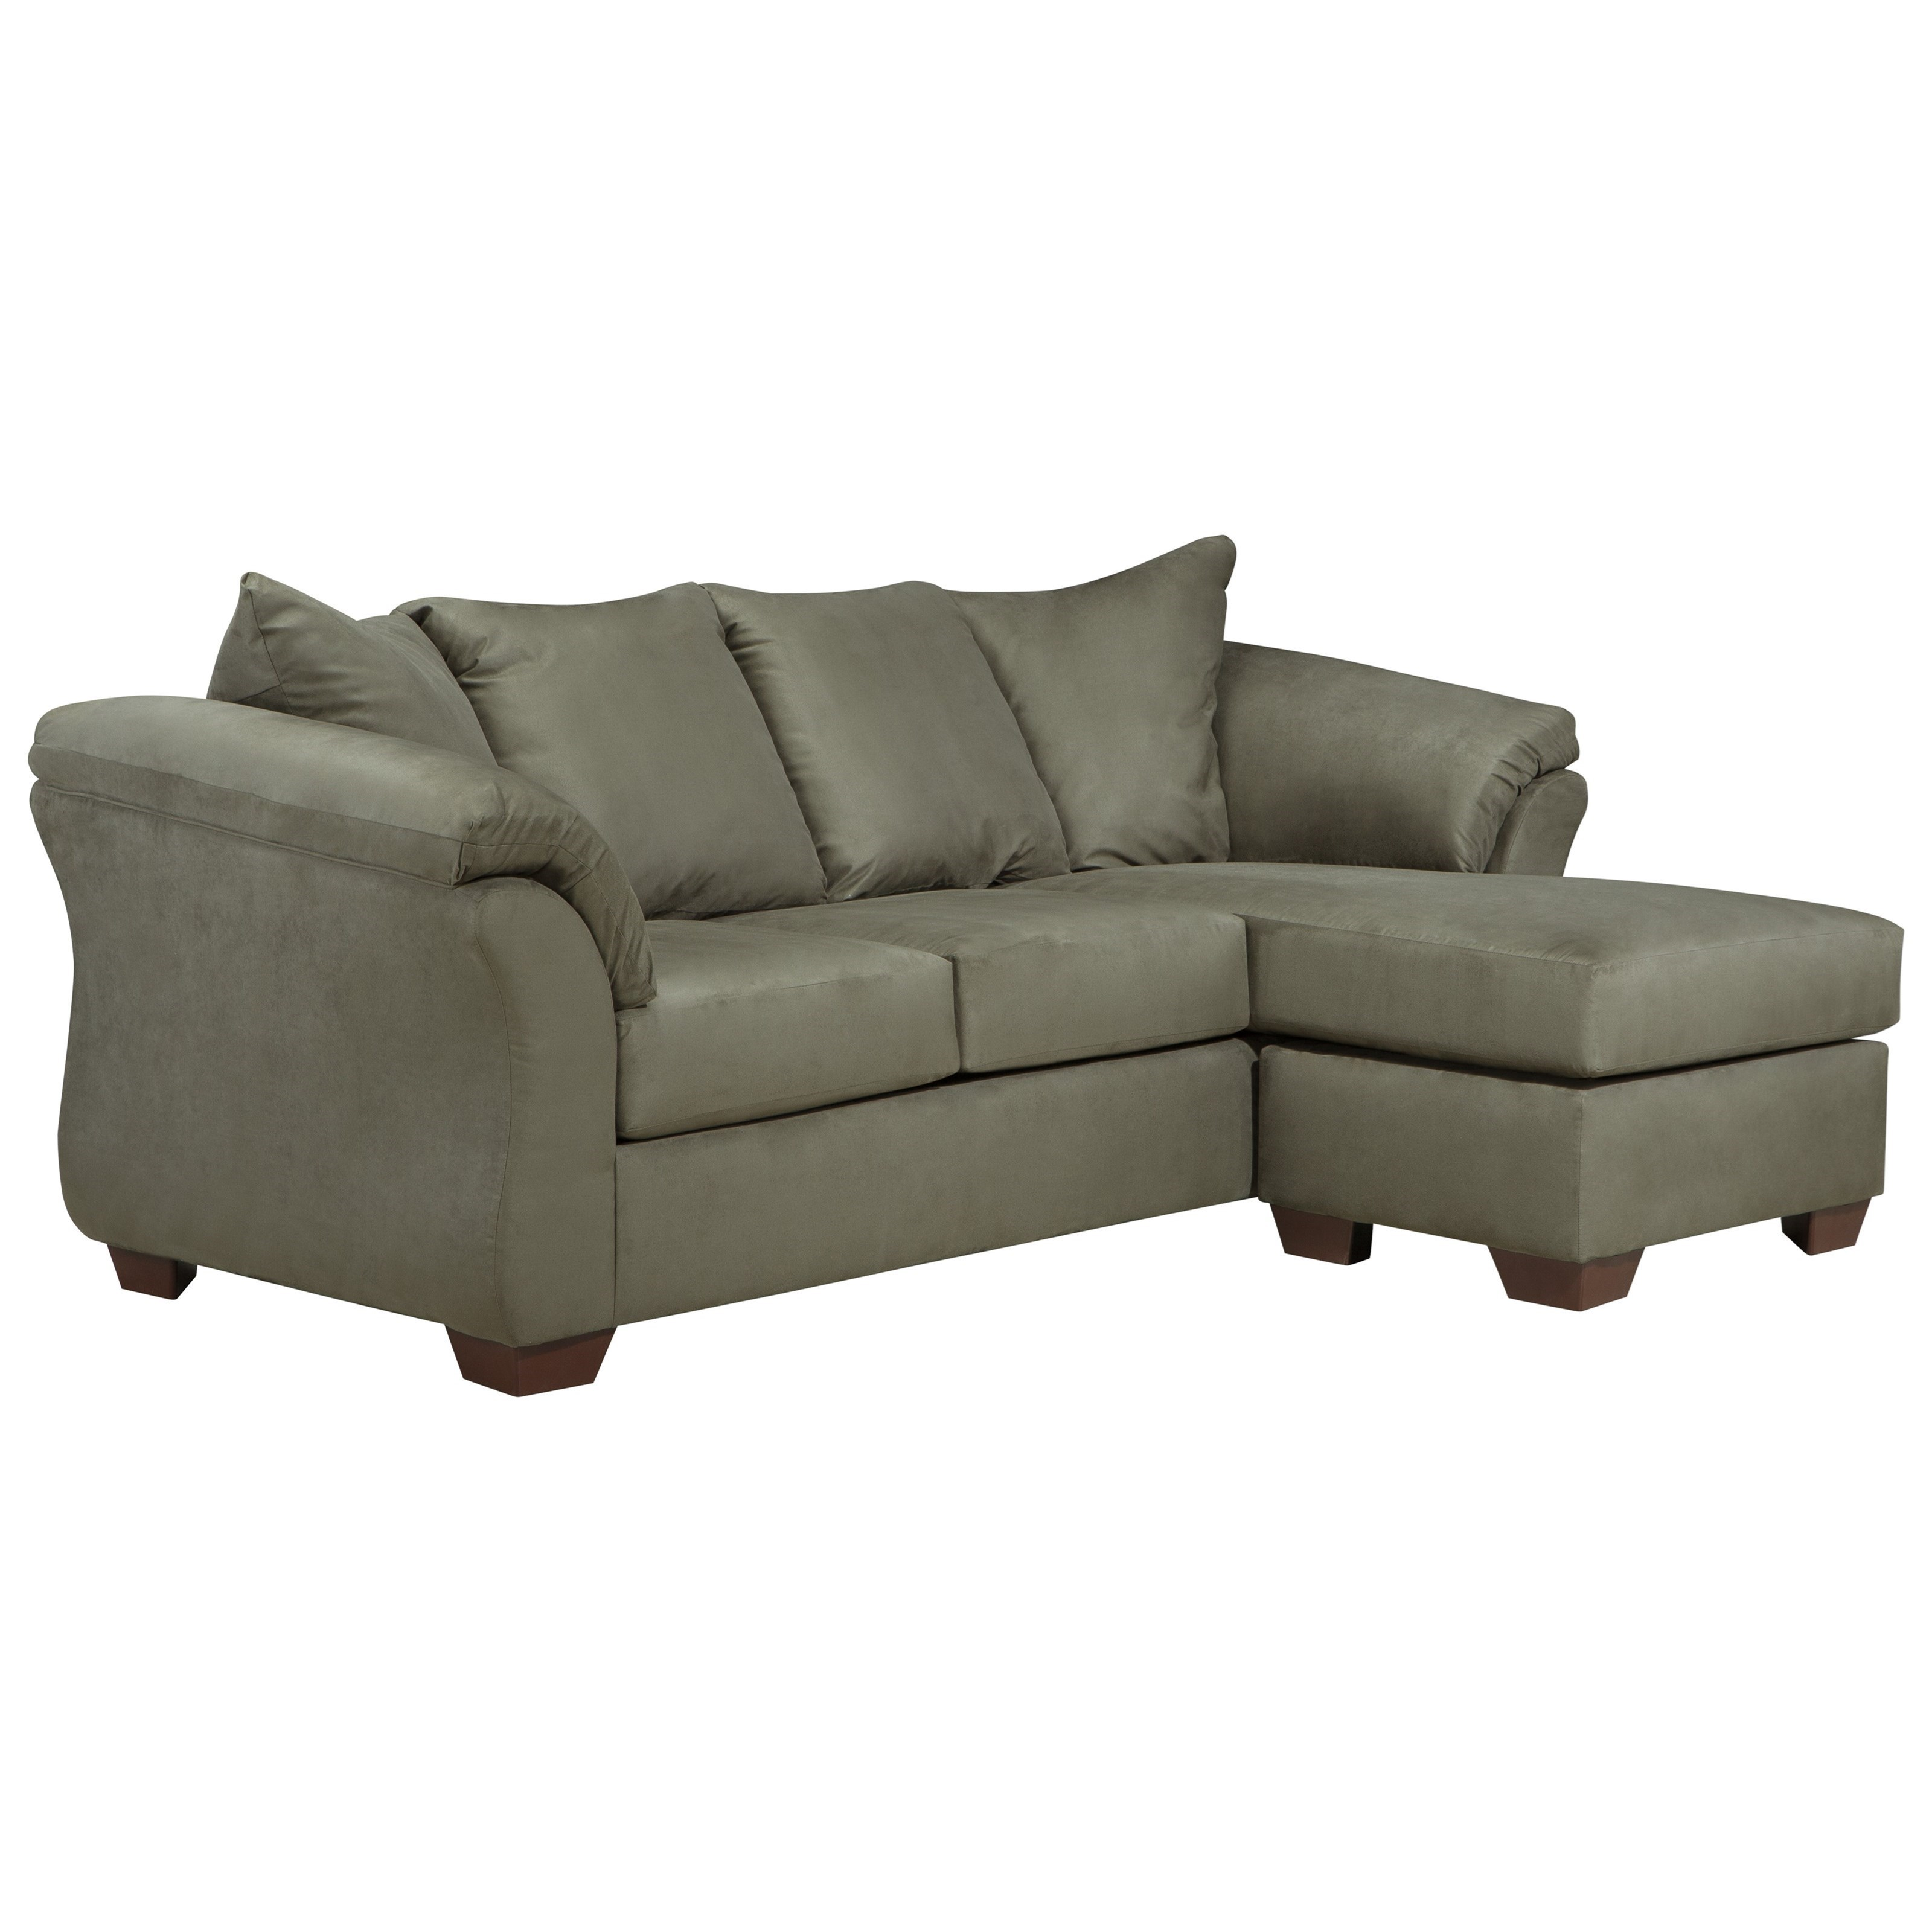 Signature Design by Ashley Darcy - Sage Full Sofa Chaise Sleeper - Item Number: 7500358